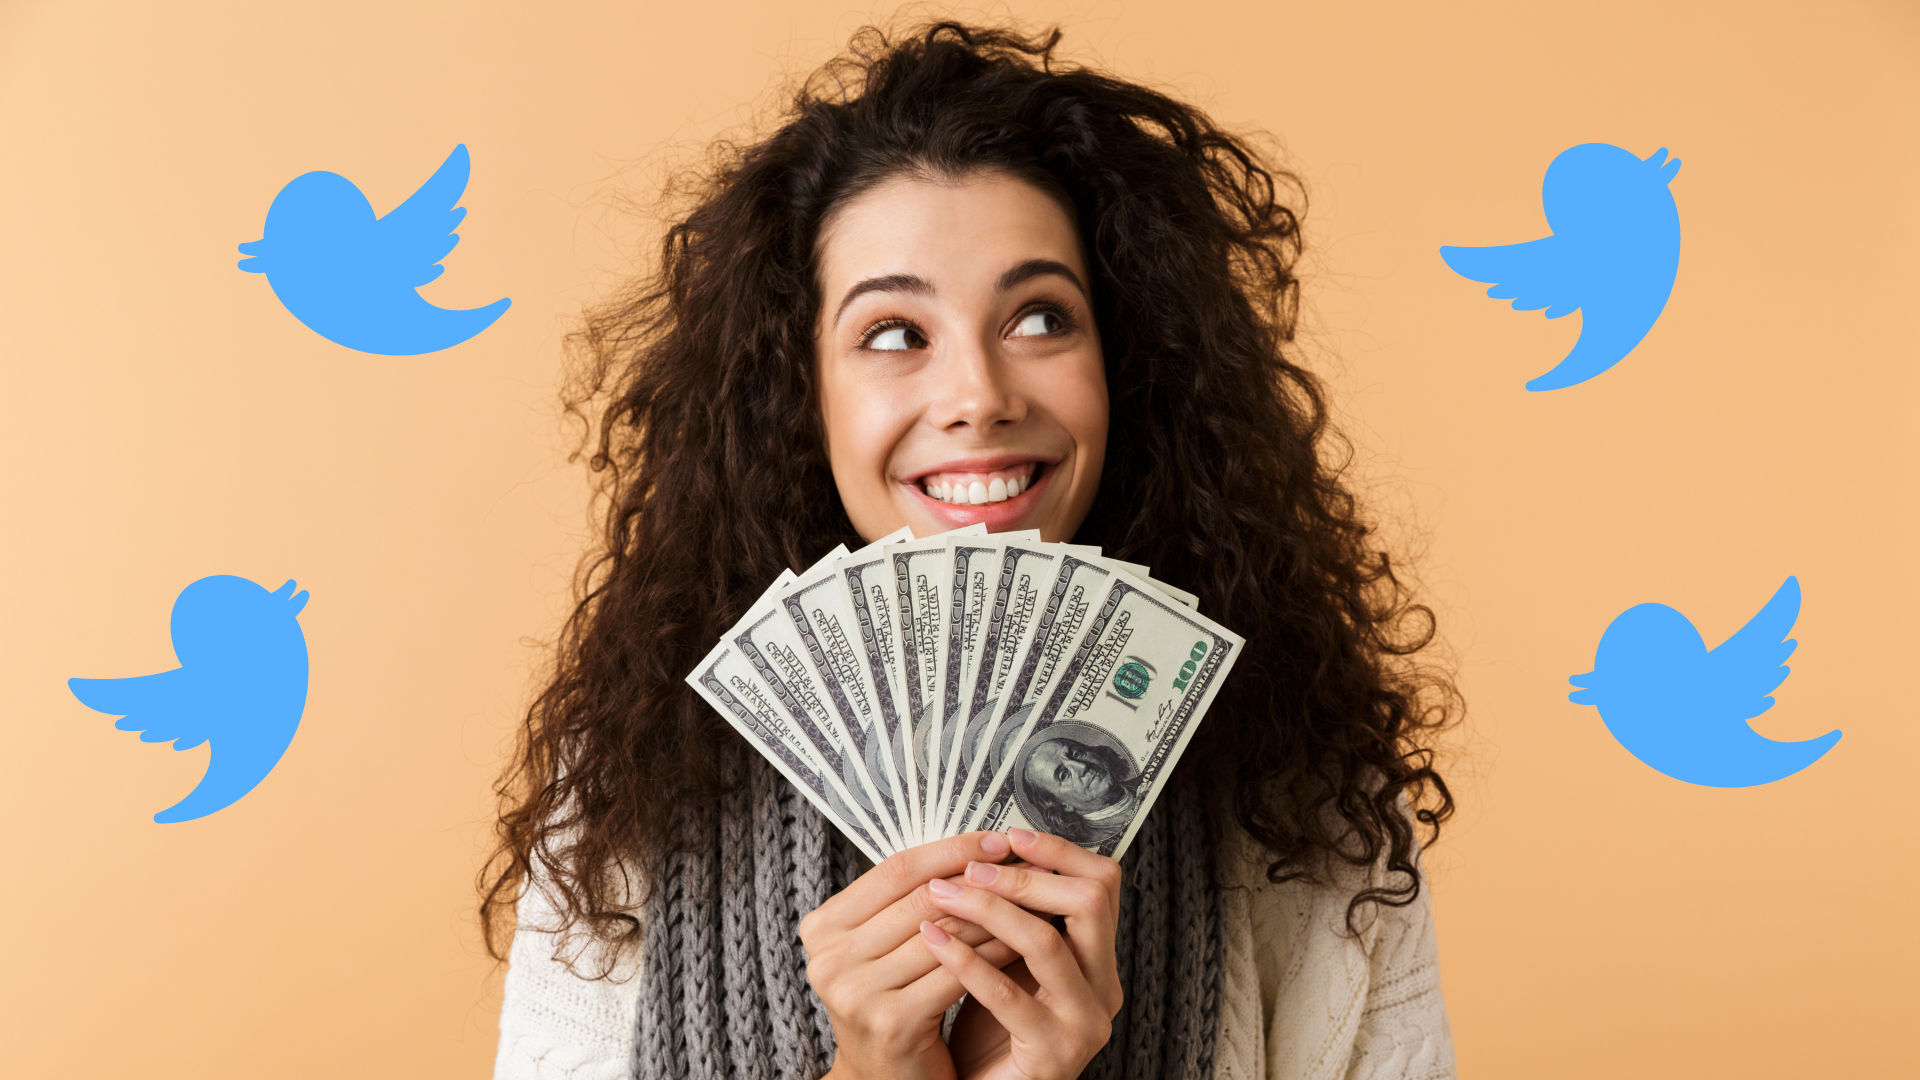 3 Easy Ways to Find Freelance Writing Jobs on Twitter